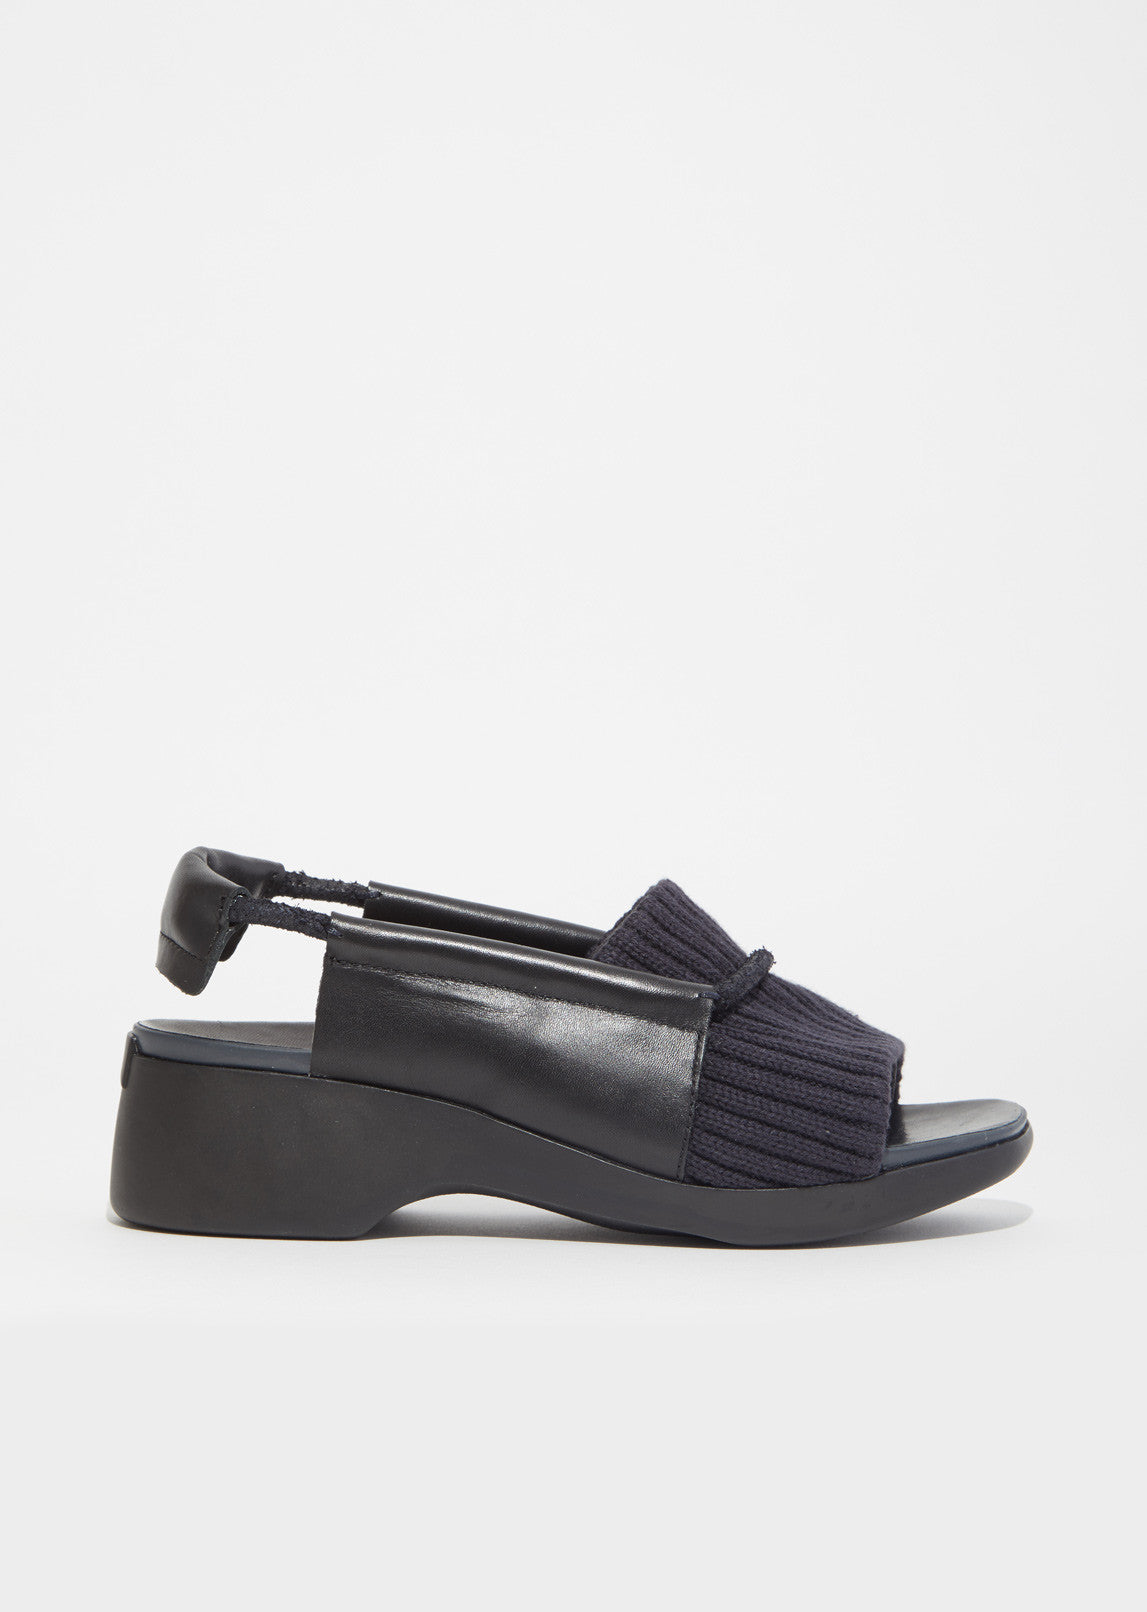 buckled open-toe sandals - Black Camper uLspJGB4Nd